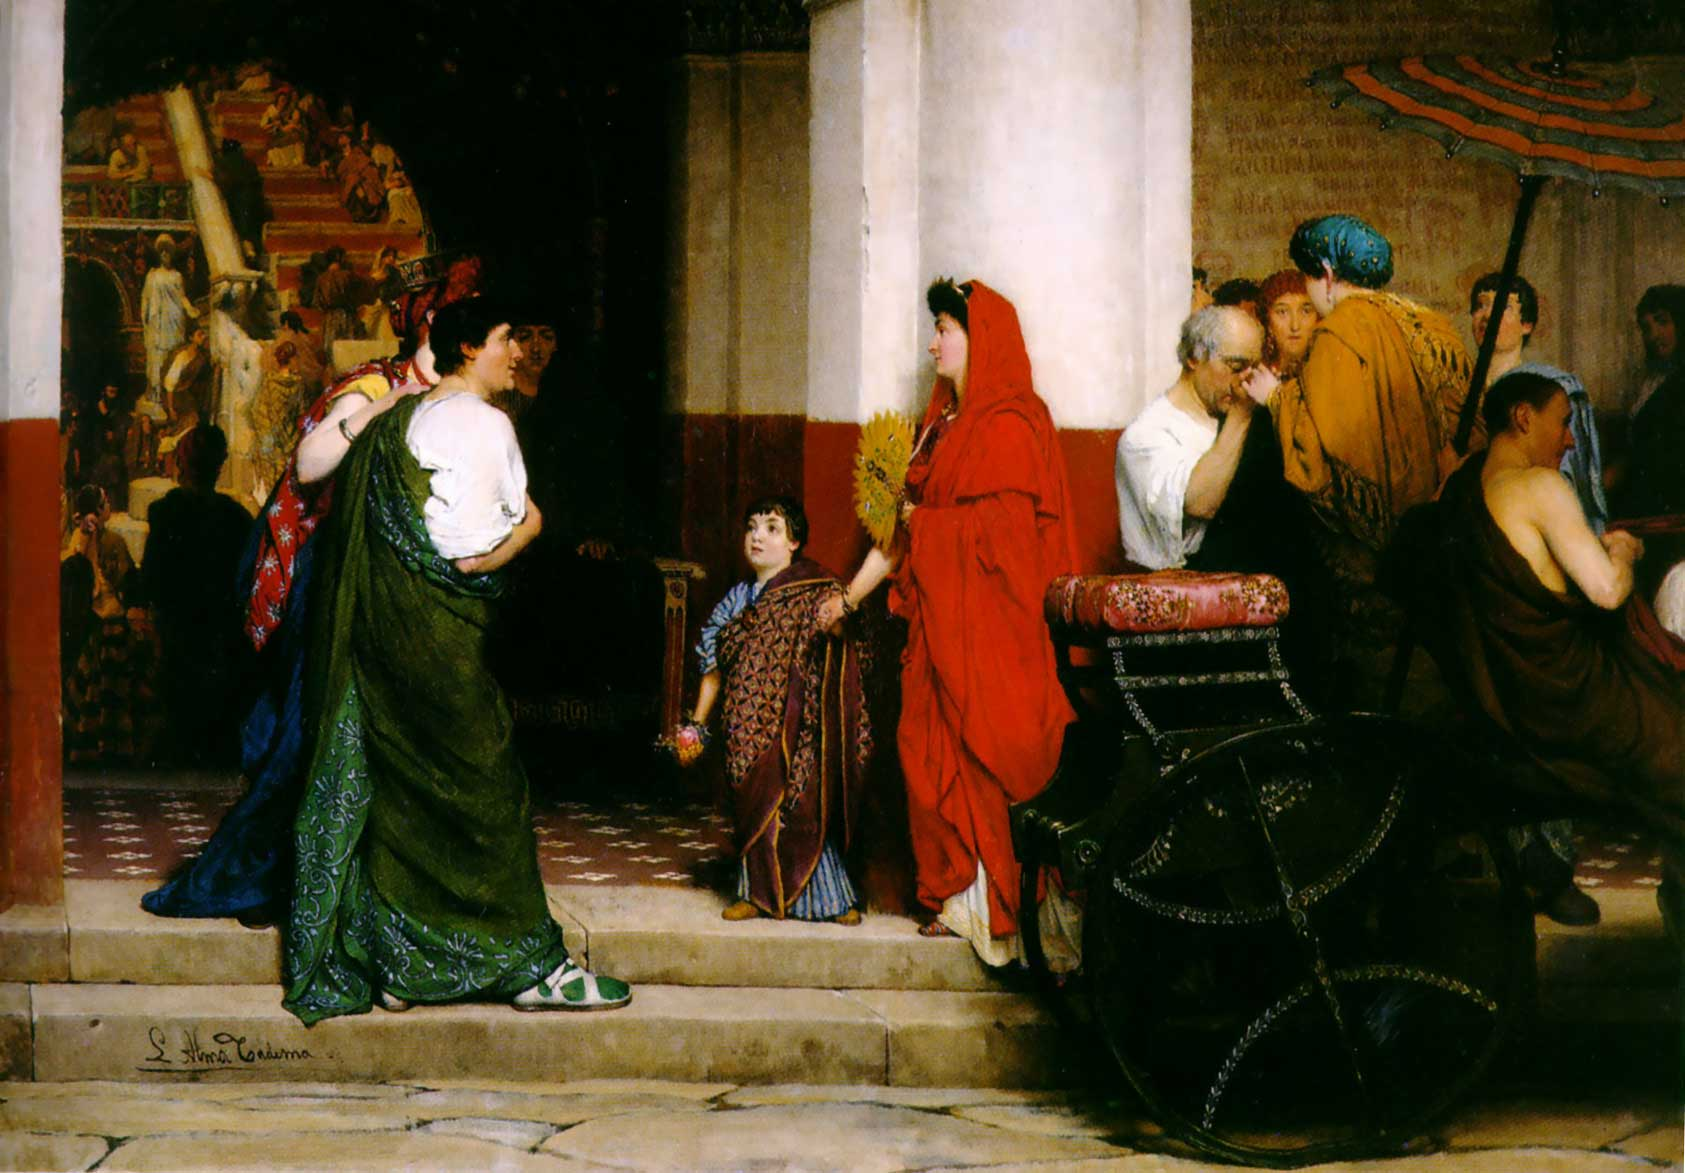 Entrance to a Roman Theatre by Lawrence Alma-Tadema